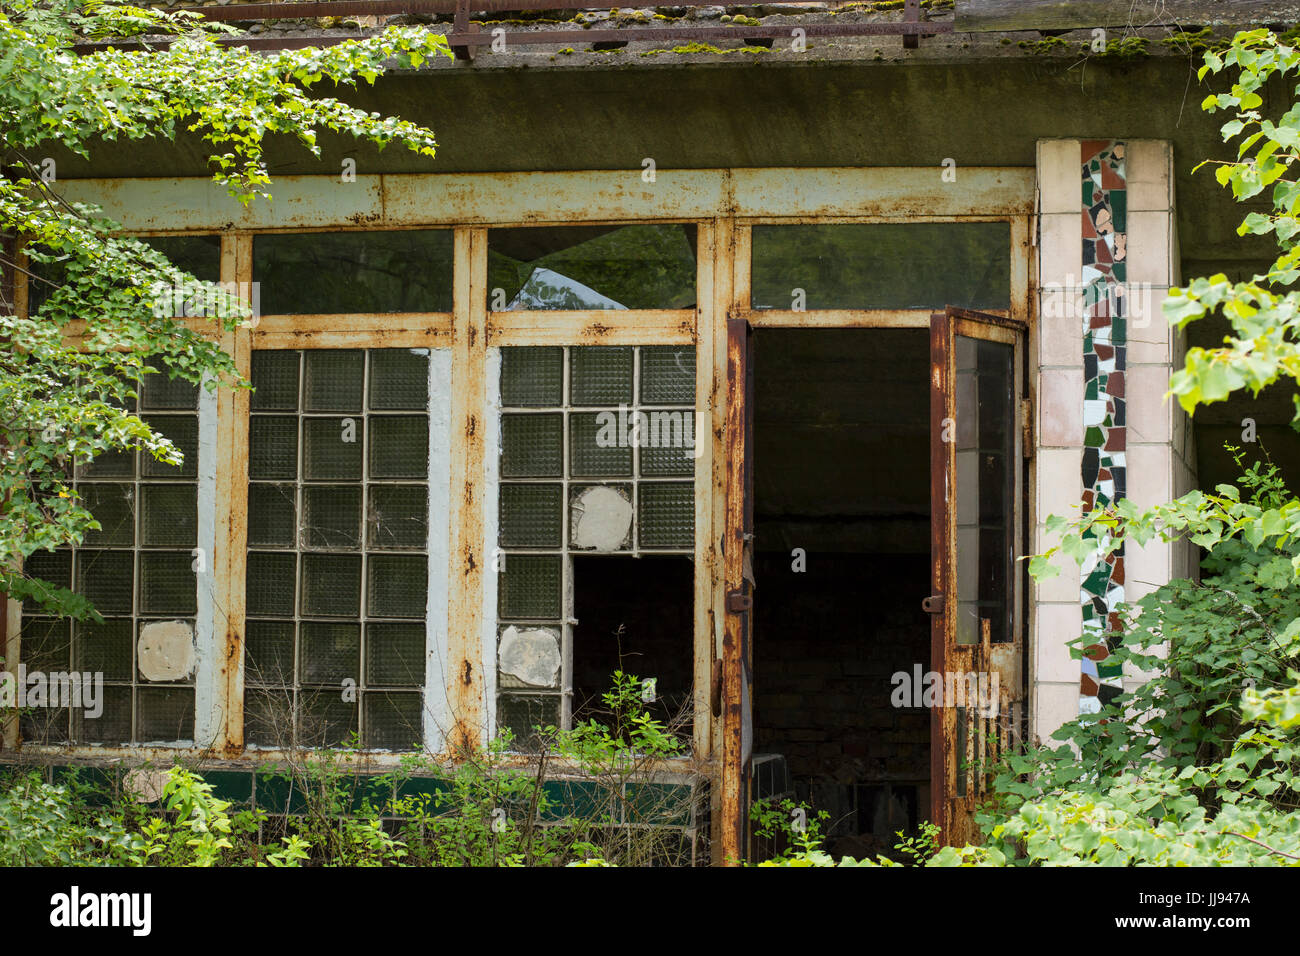 Abandoned Building in Ghost City of Pripyat in Chernobyl Exclusion Zone - Stock Image